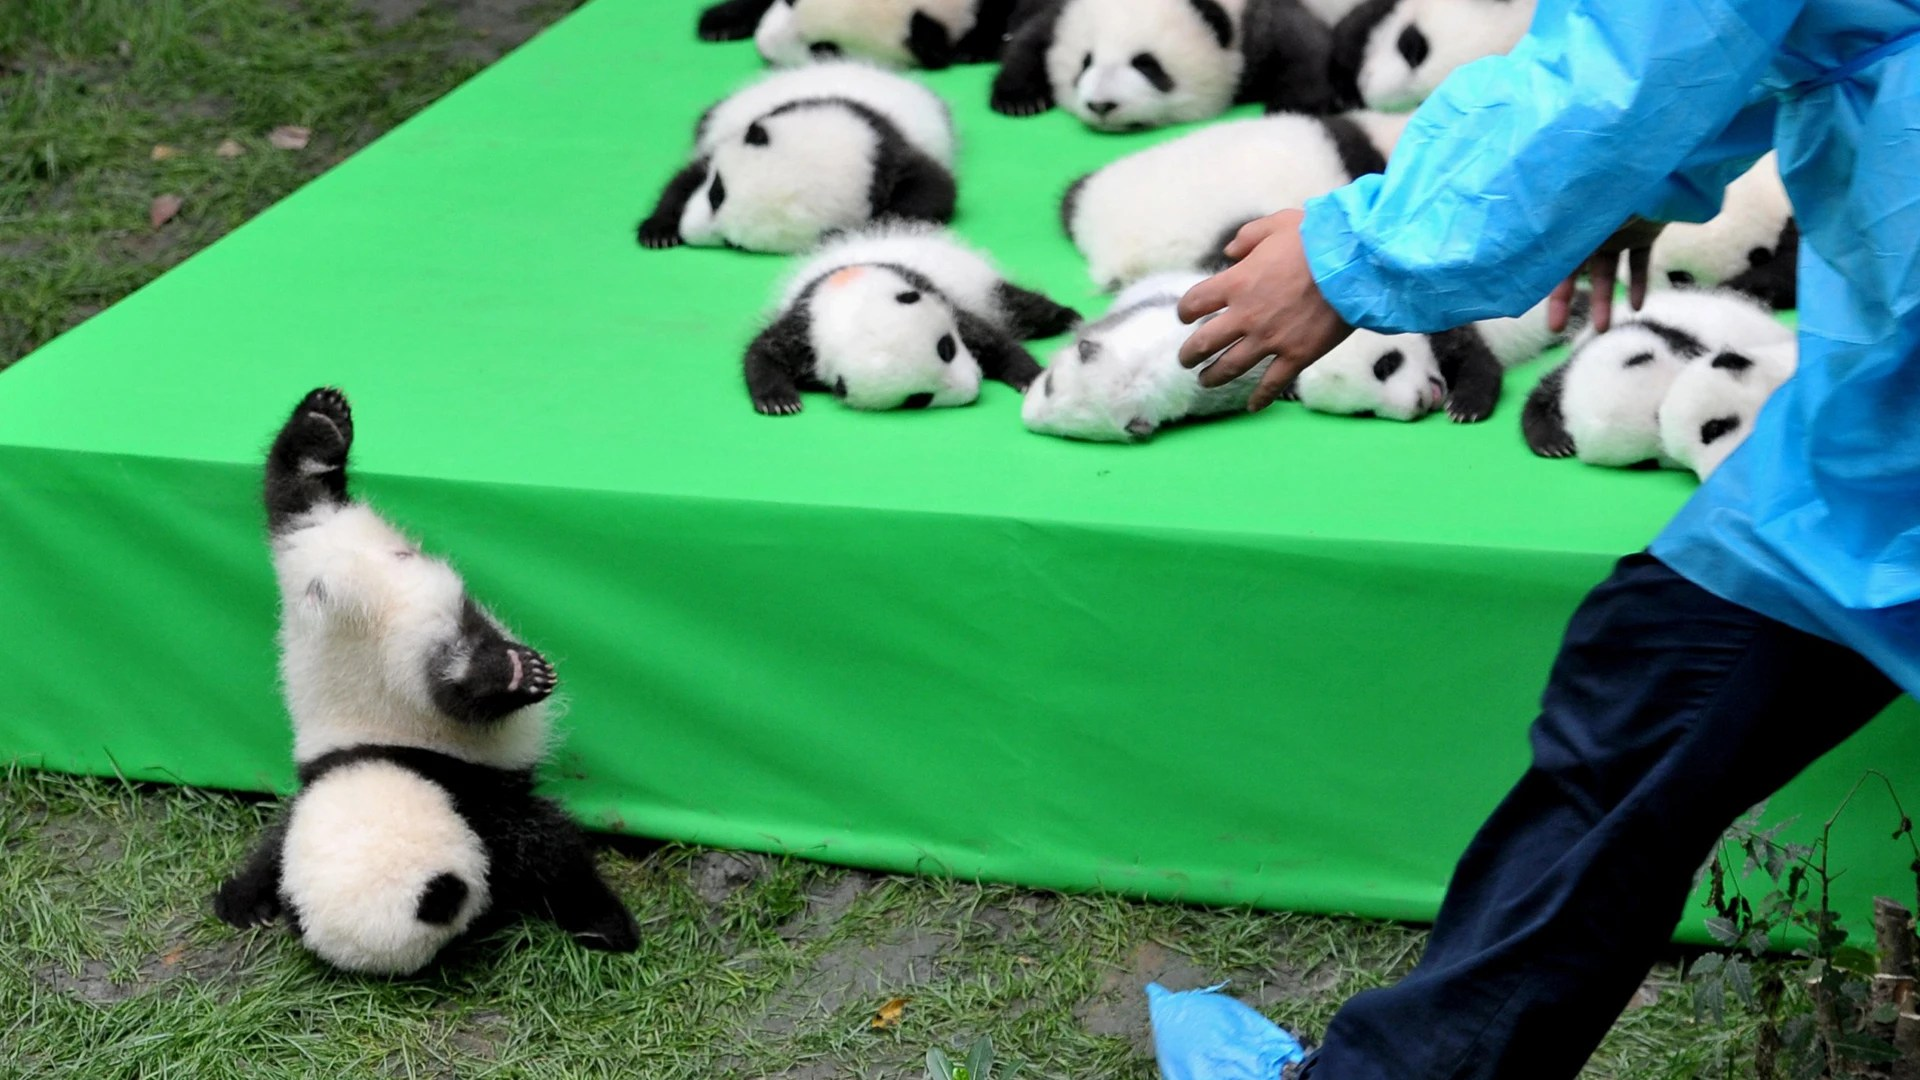 Free Fall Pictures Desktop Wallpaper Falling Panda And More In This Week S Best Animal Pictures